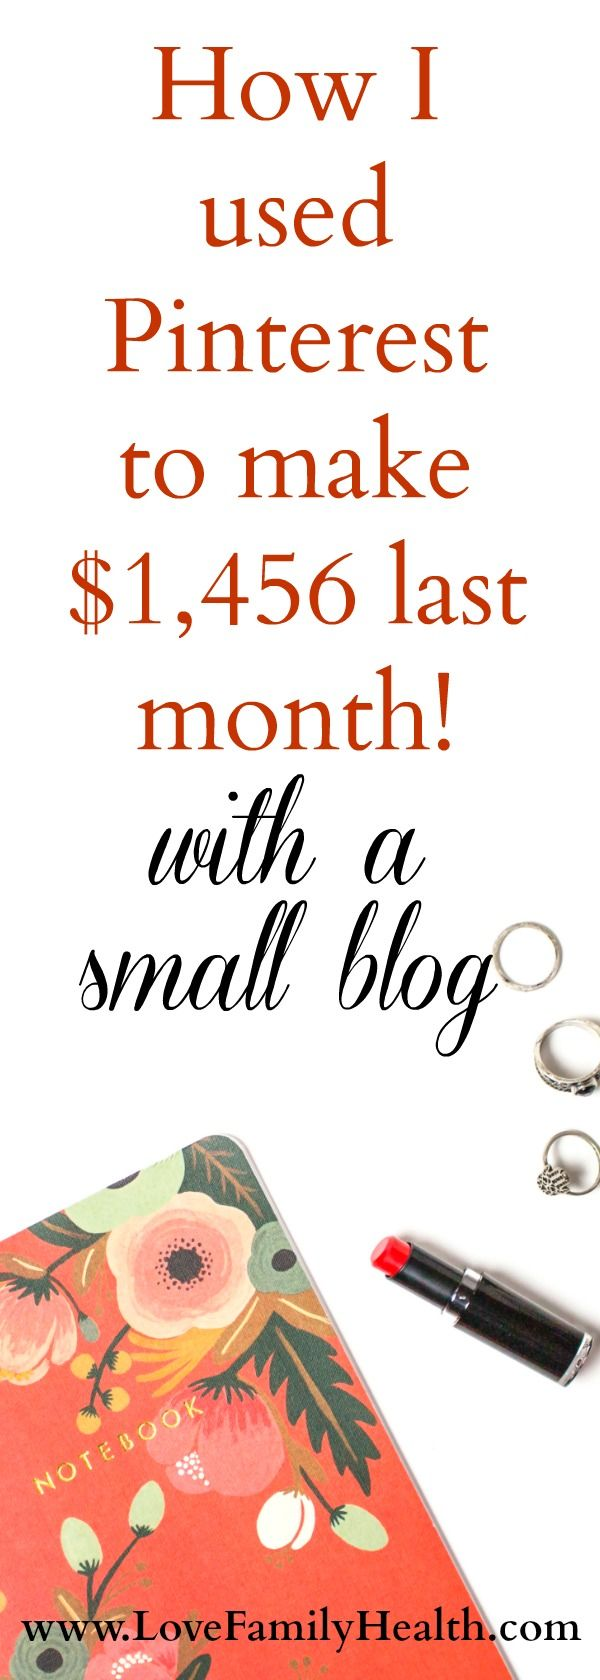 How I used Pinterest to make $1,456 last month! Make money with a small blog!